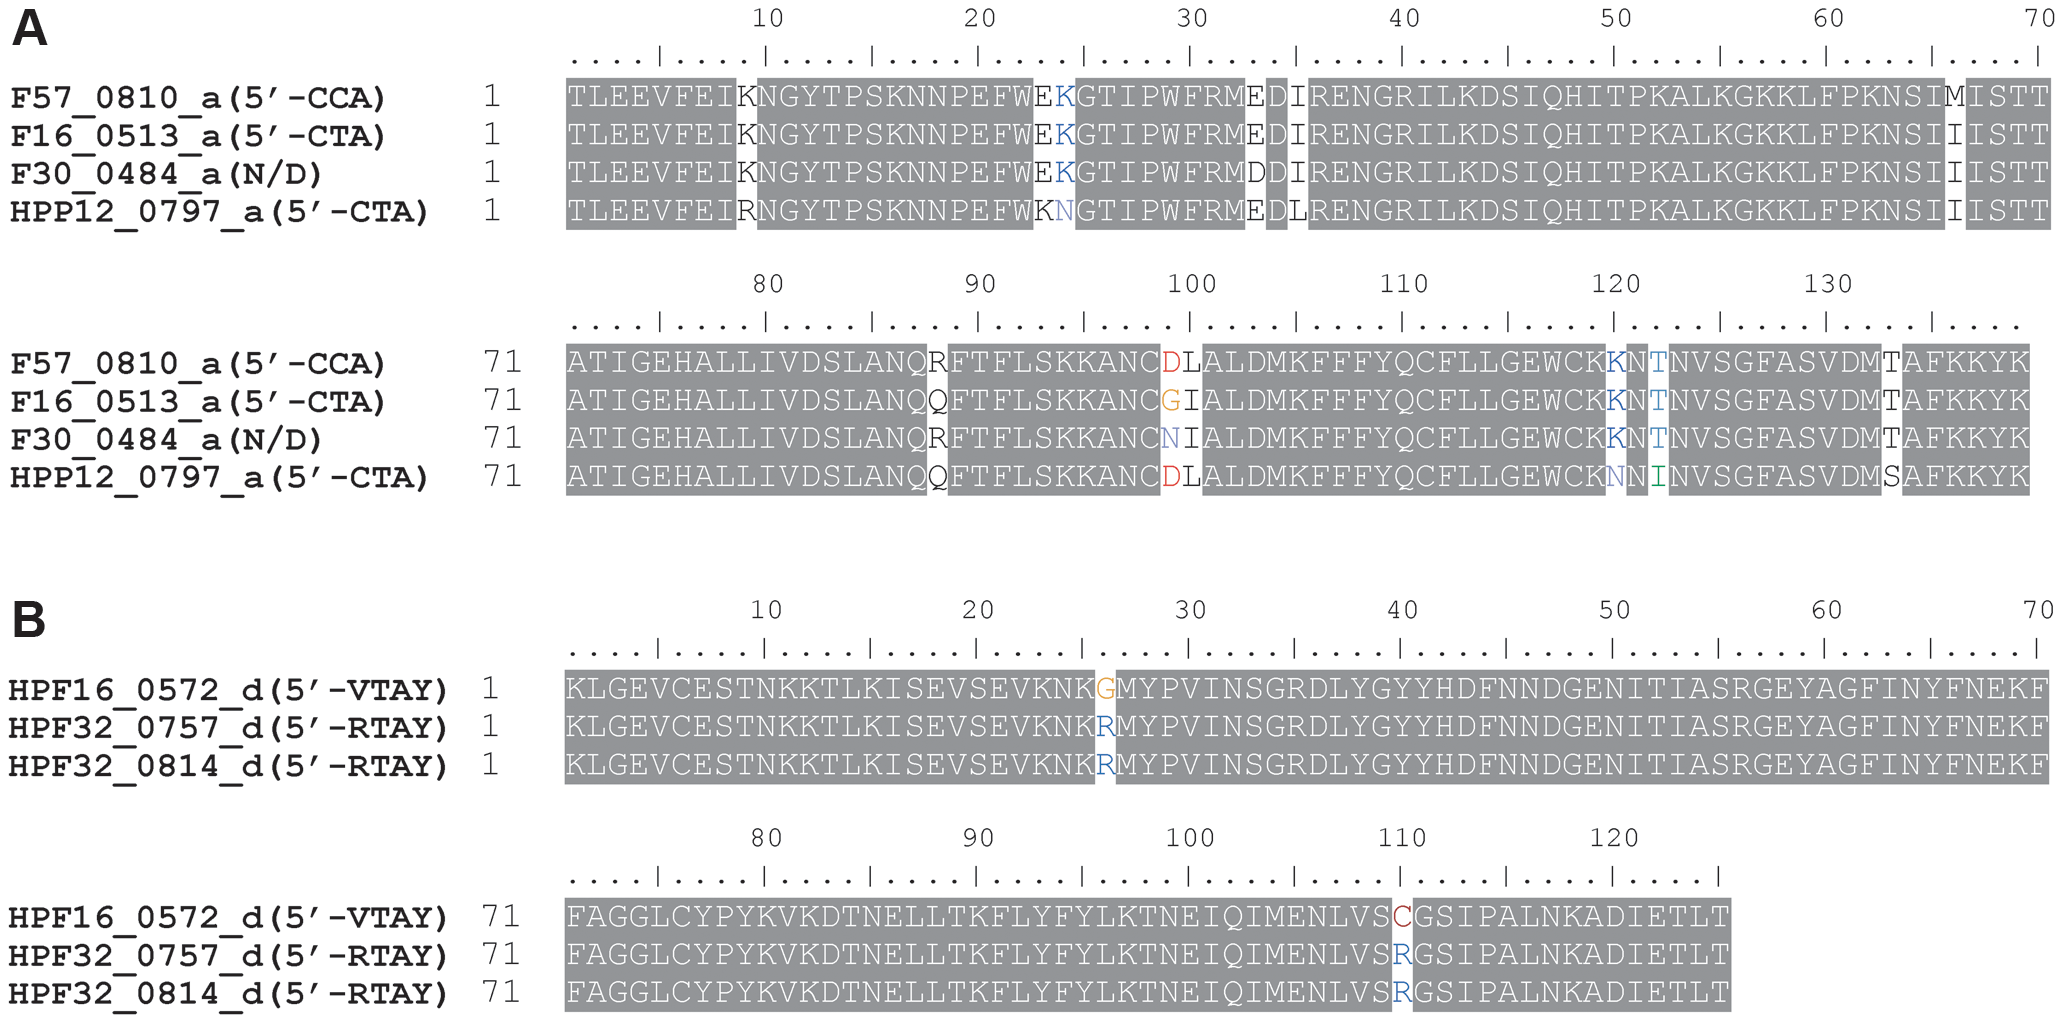 TRD sequences within a homology group differing in the recognition sequence.